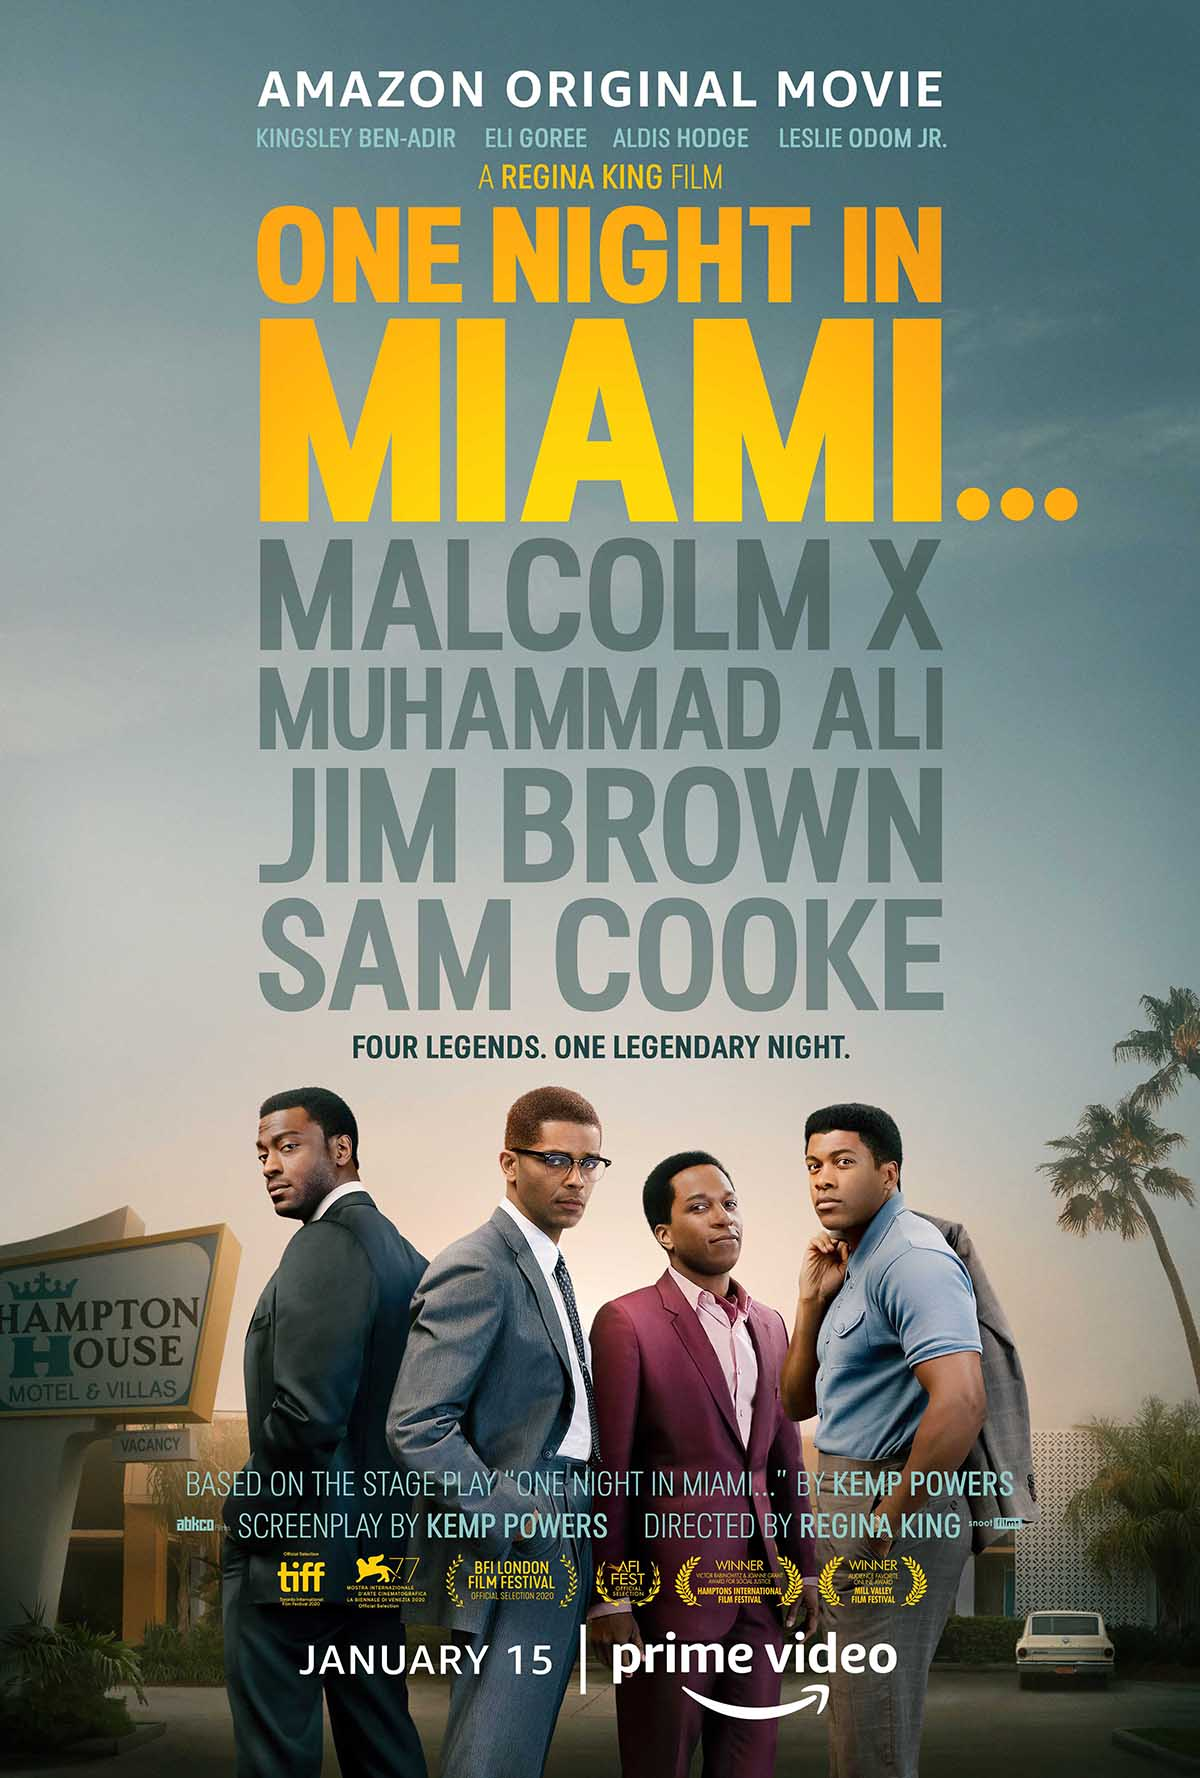 One Night in Miami Trailer Brings Together Four Legends